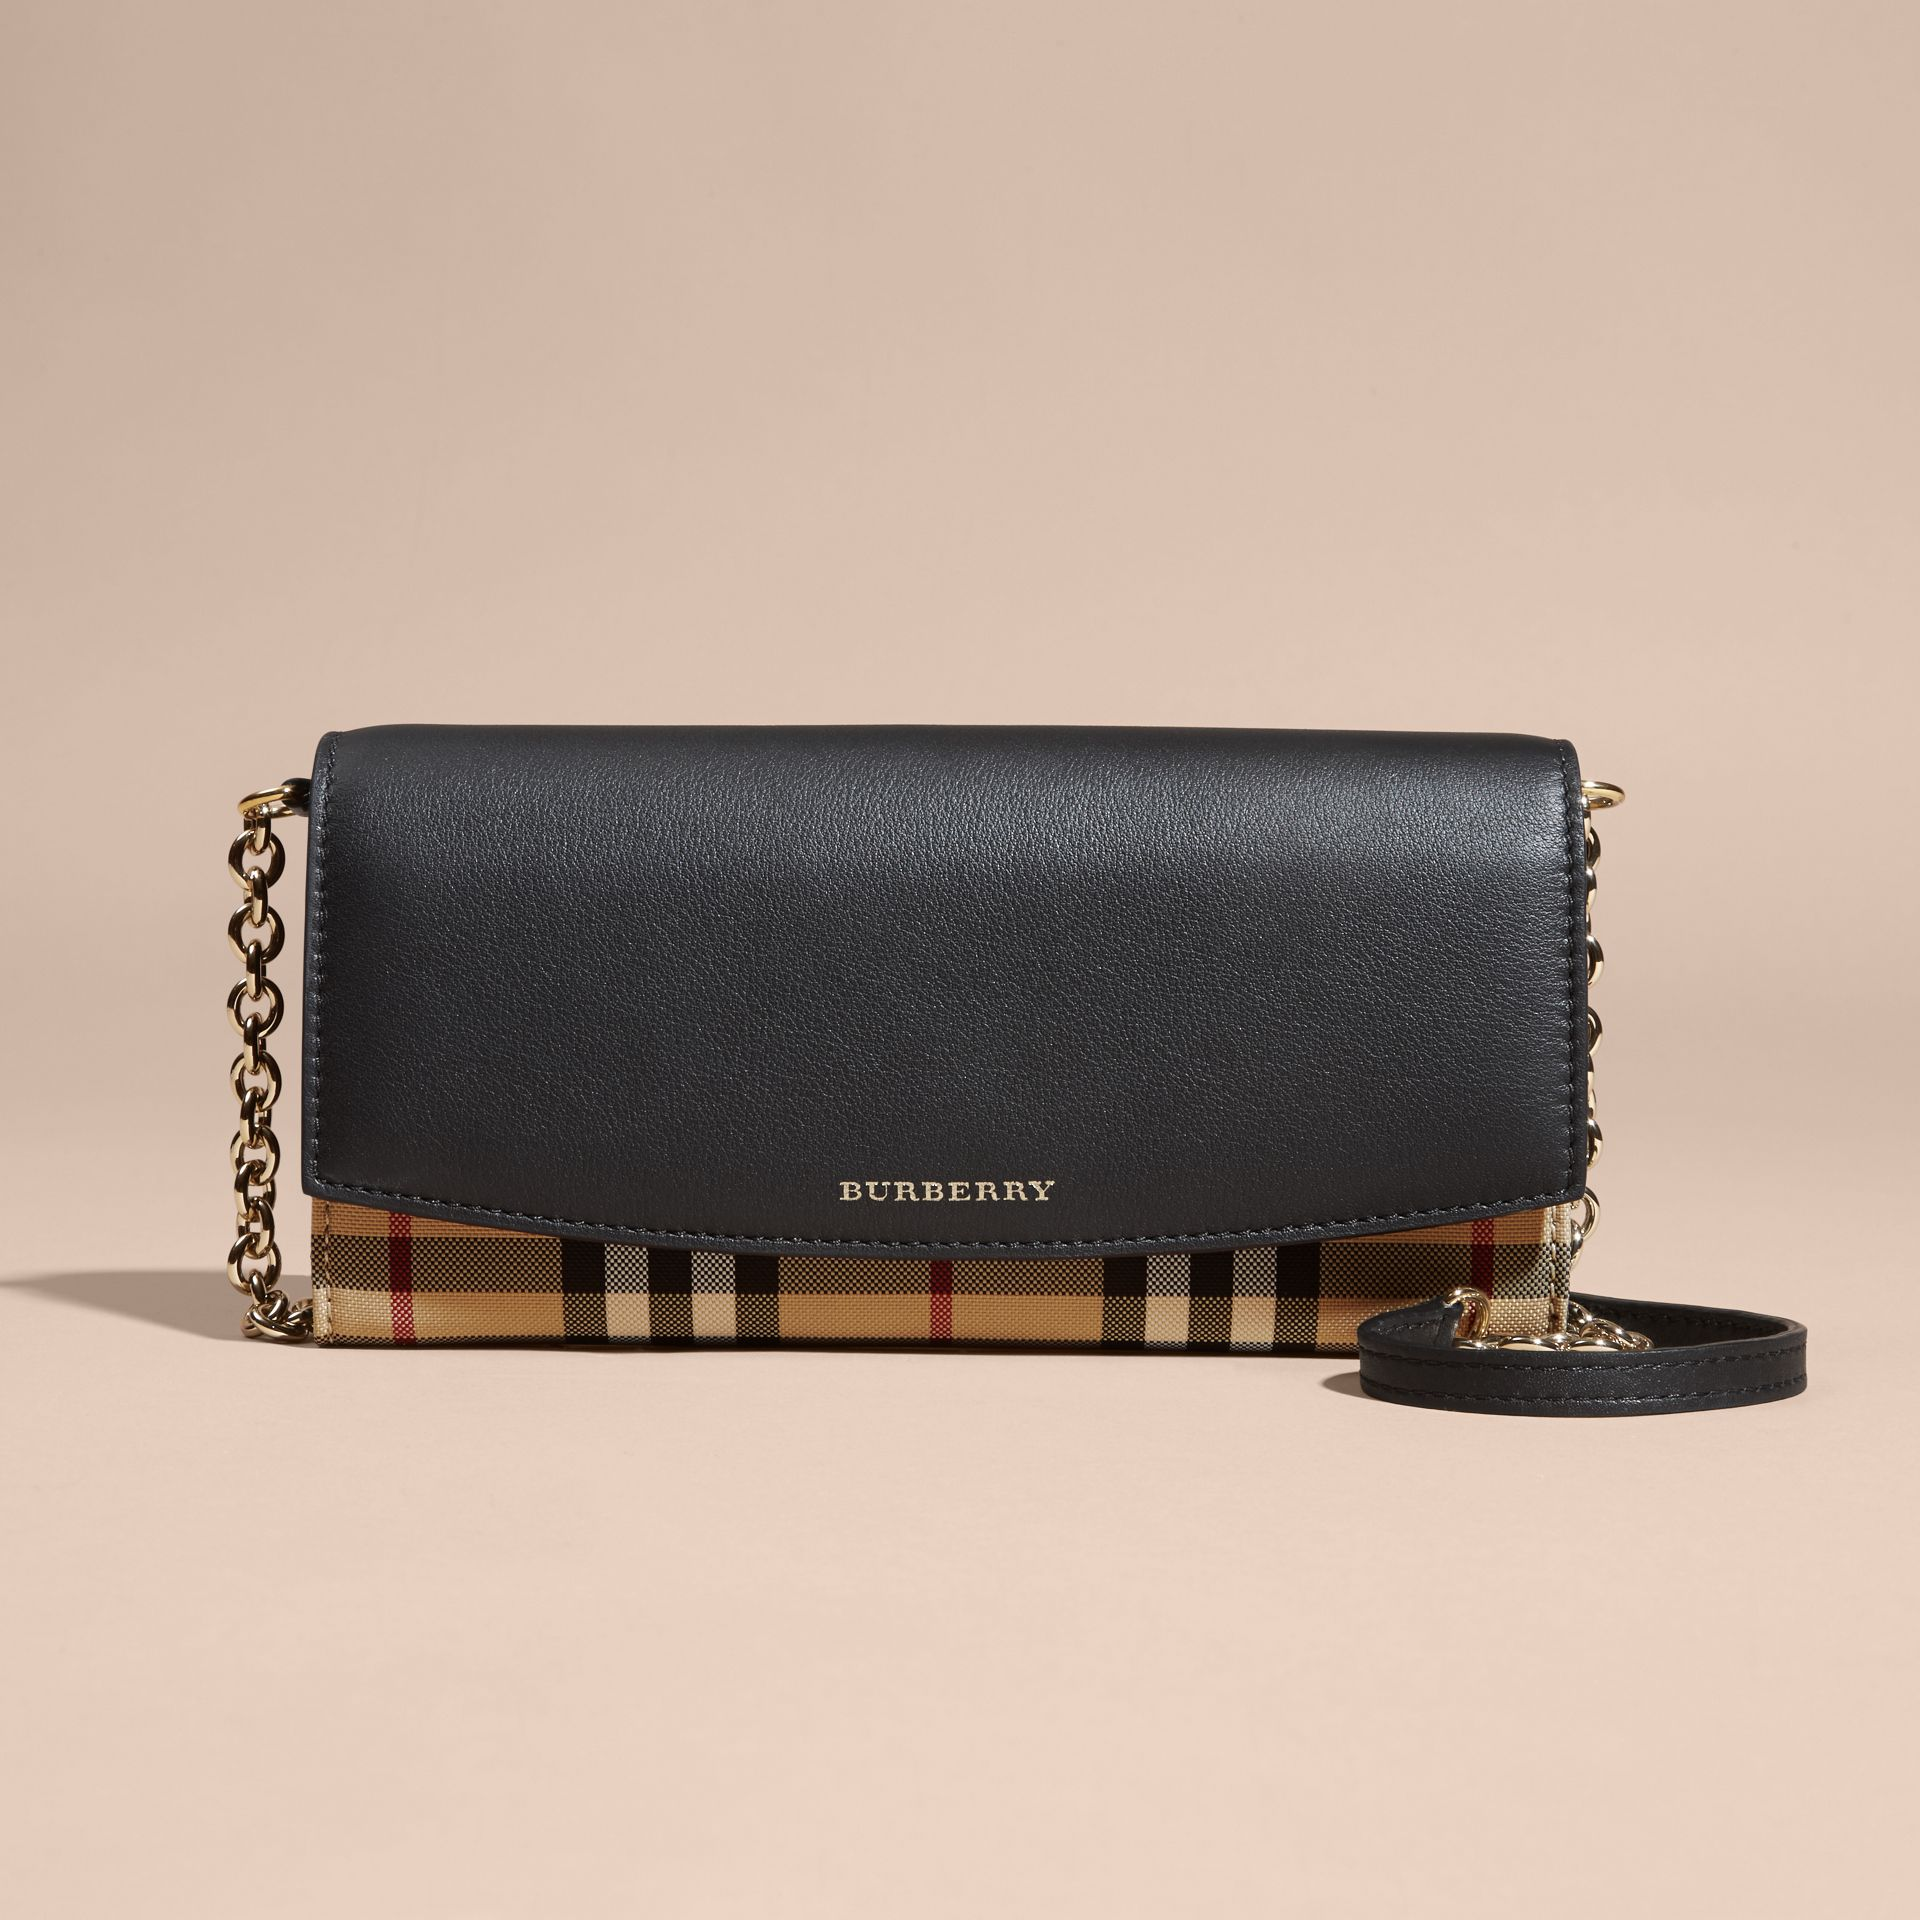 Horseferry Check and Leather Wallet with Chain in Black - Women | Burberry - gallery image 9